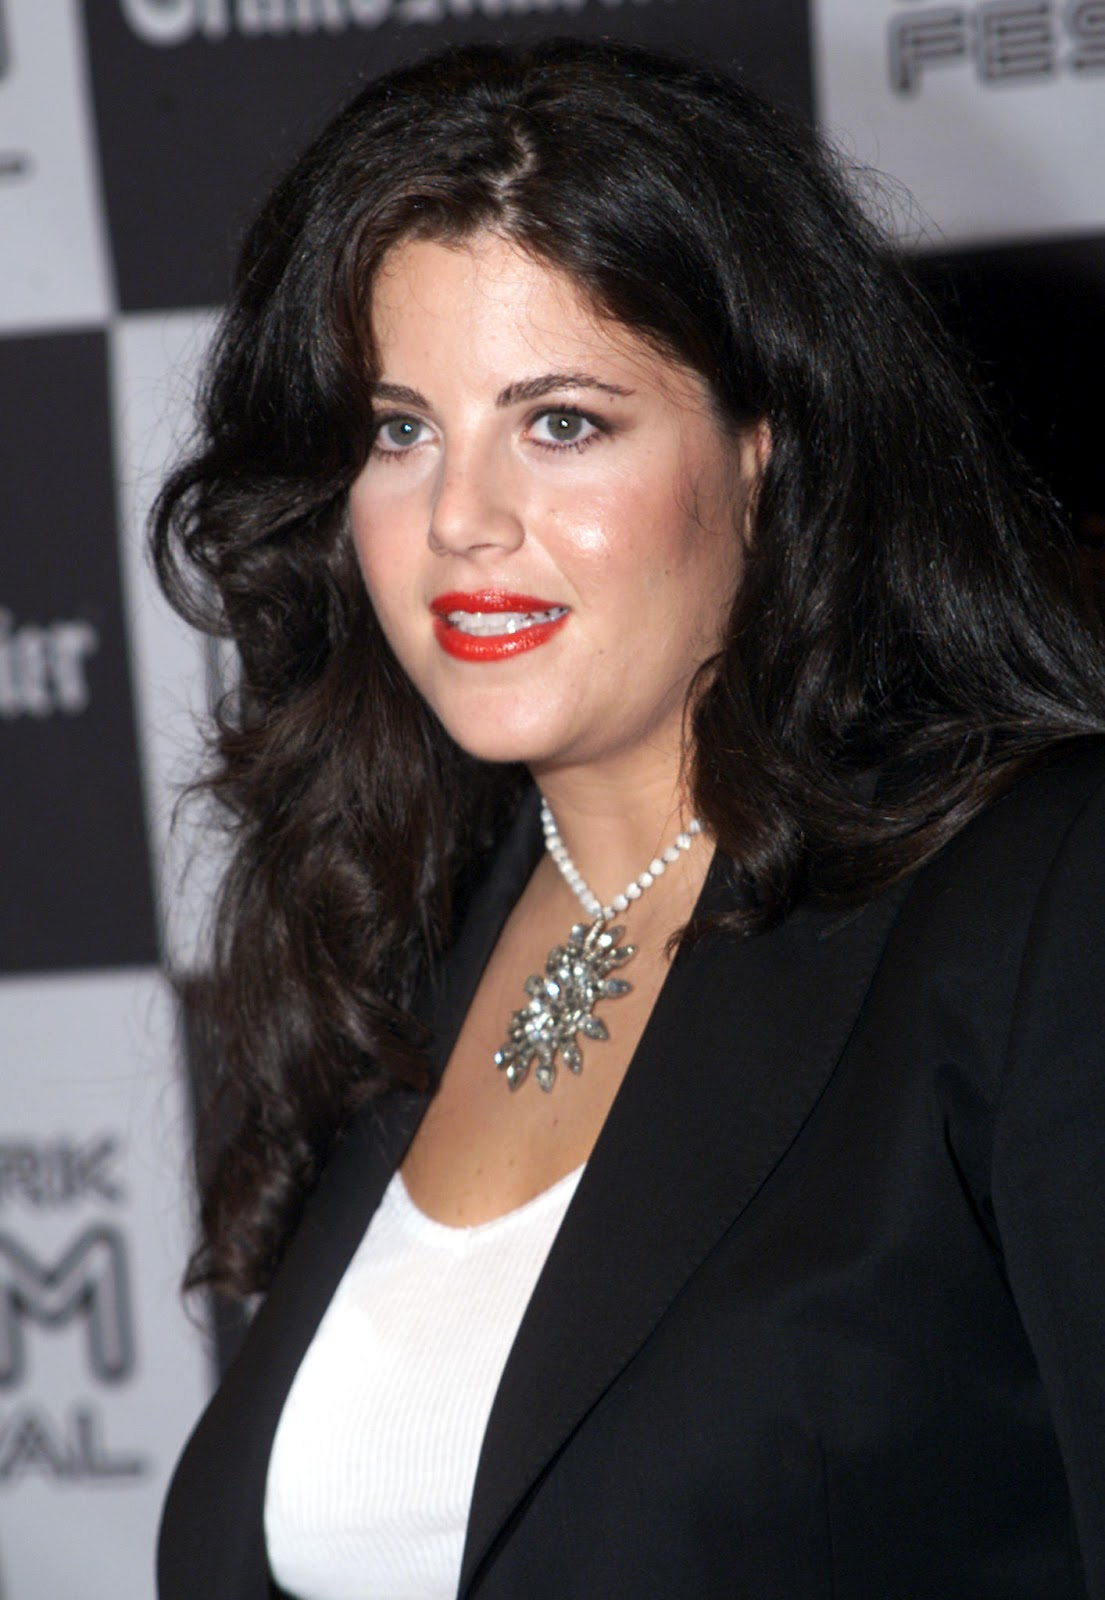 Cool Haircut Old Story But Still Interesting Of Monica Lewinsky